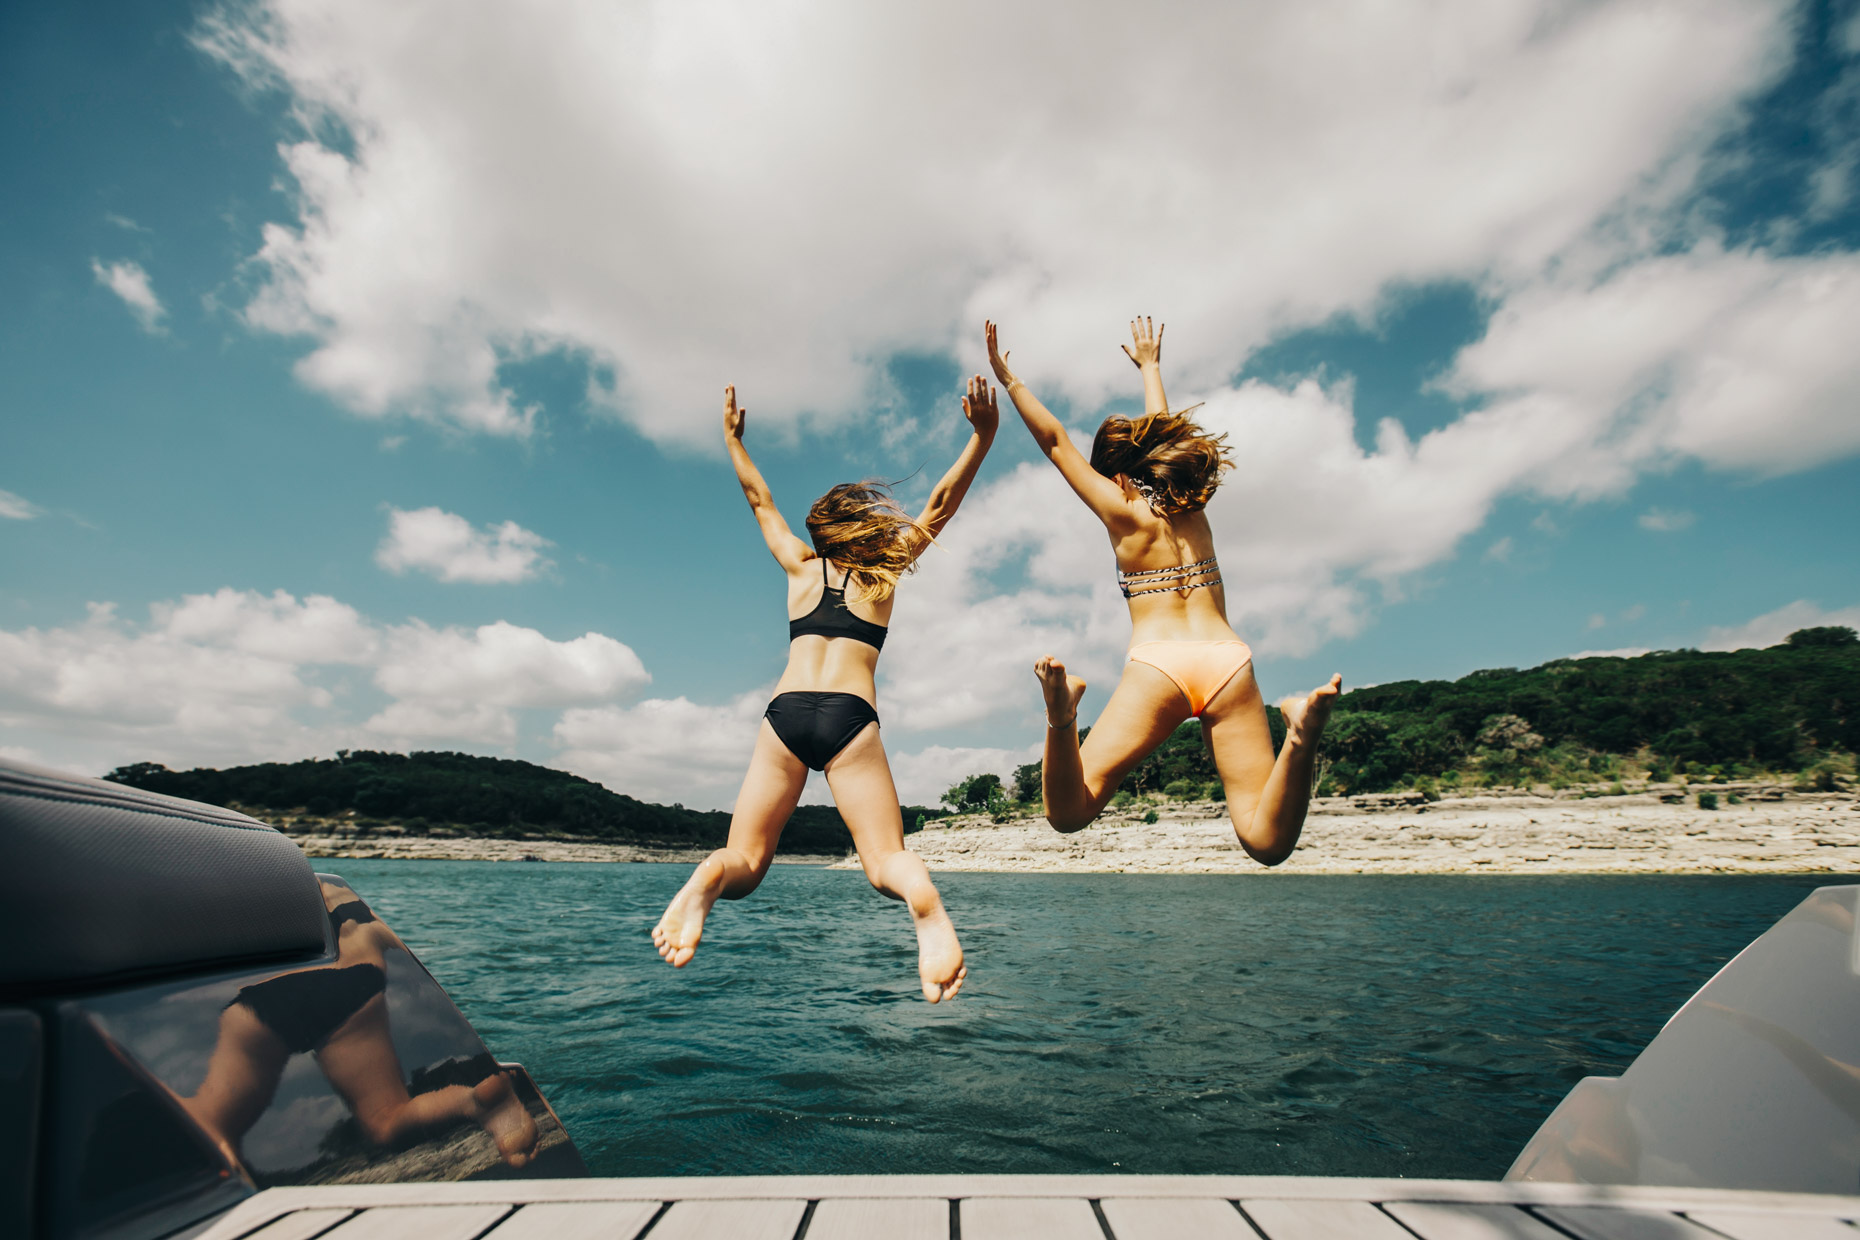 Teen girls jumping off of boat into lake